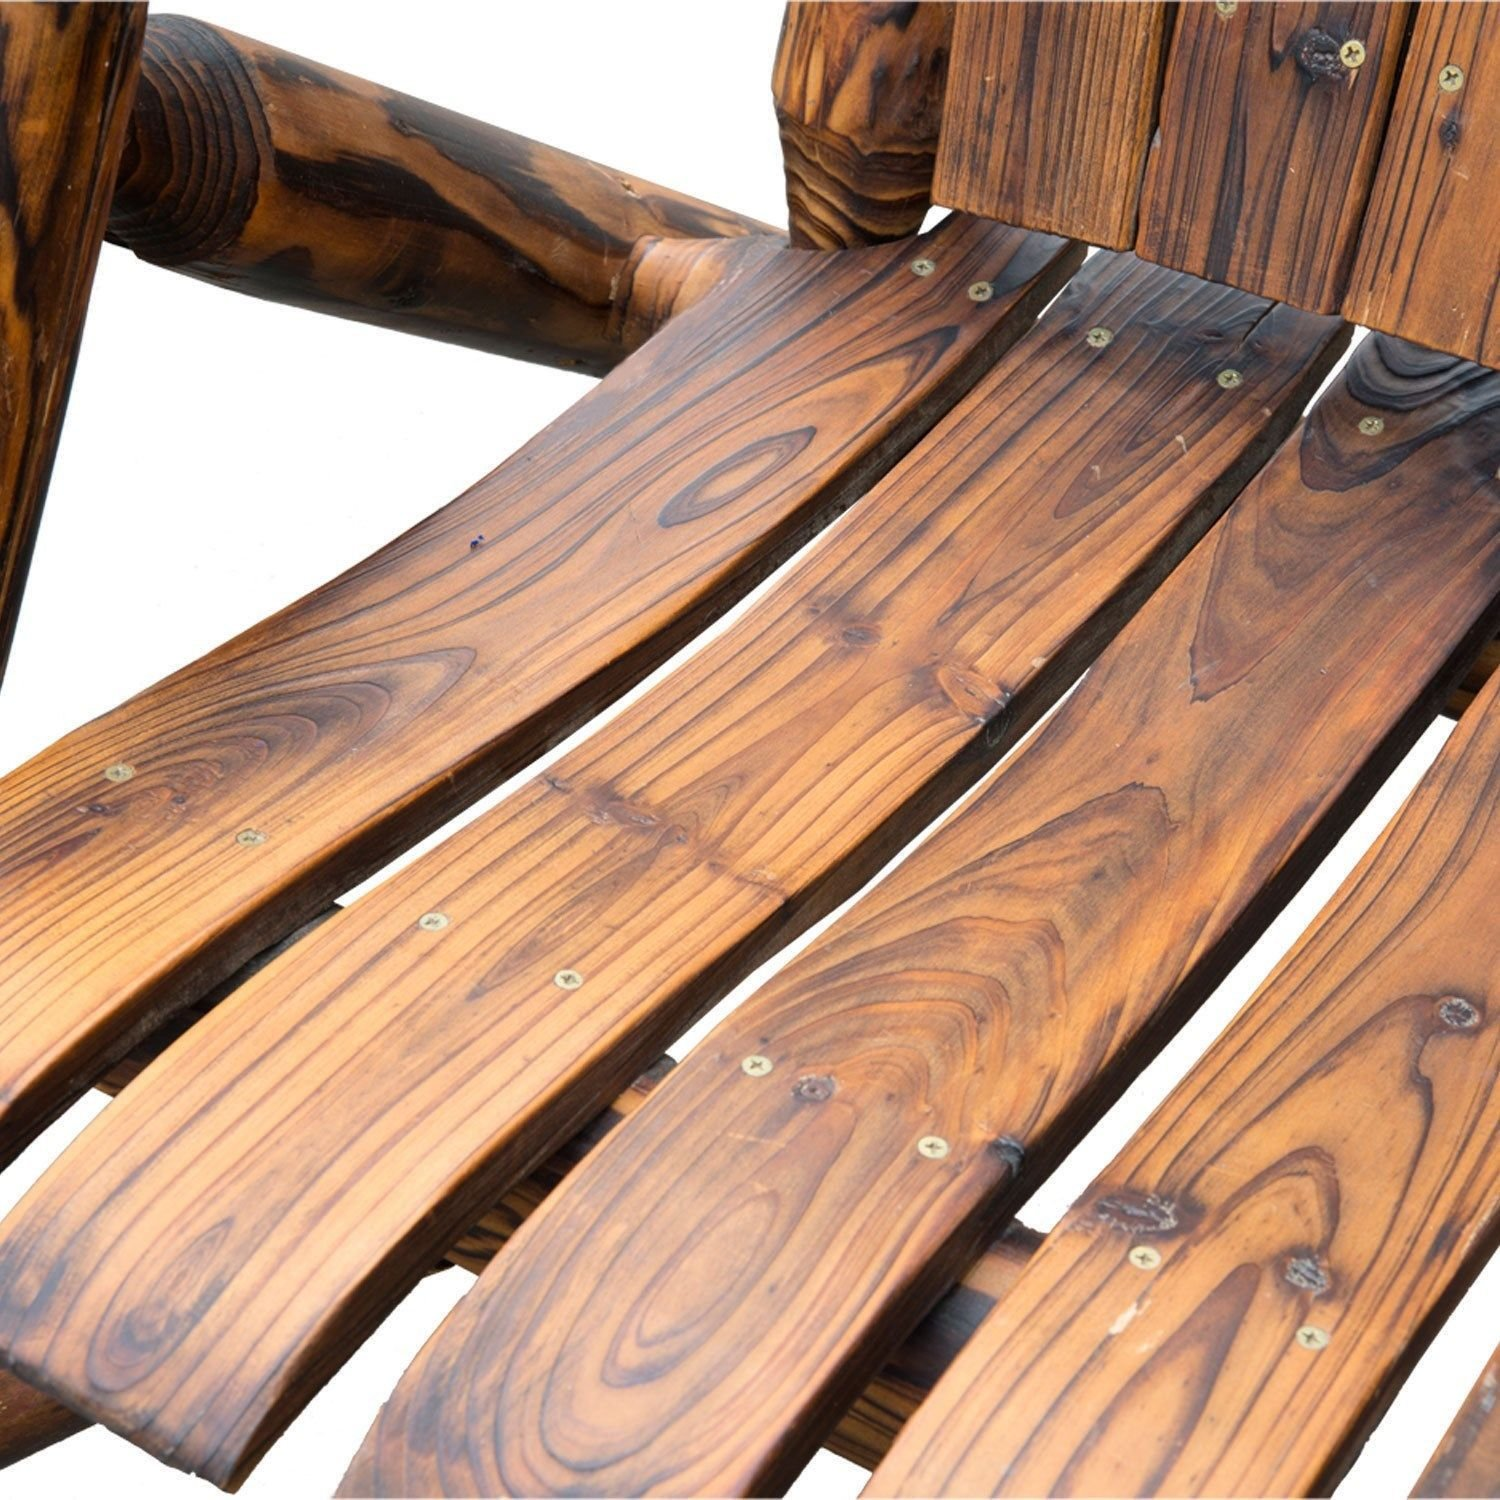 Outsunny Wooden Double Adirondack Chair Loveseat with Ice Bucket - Rustic Brown